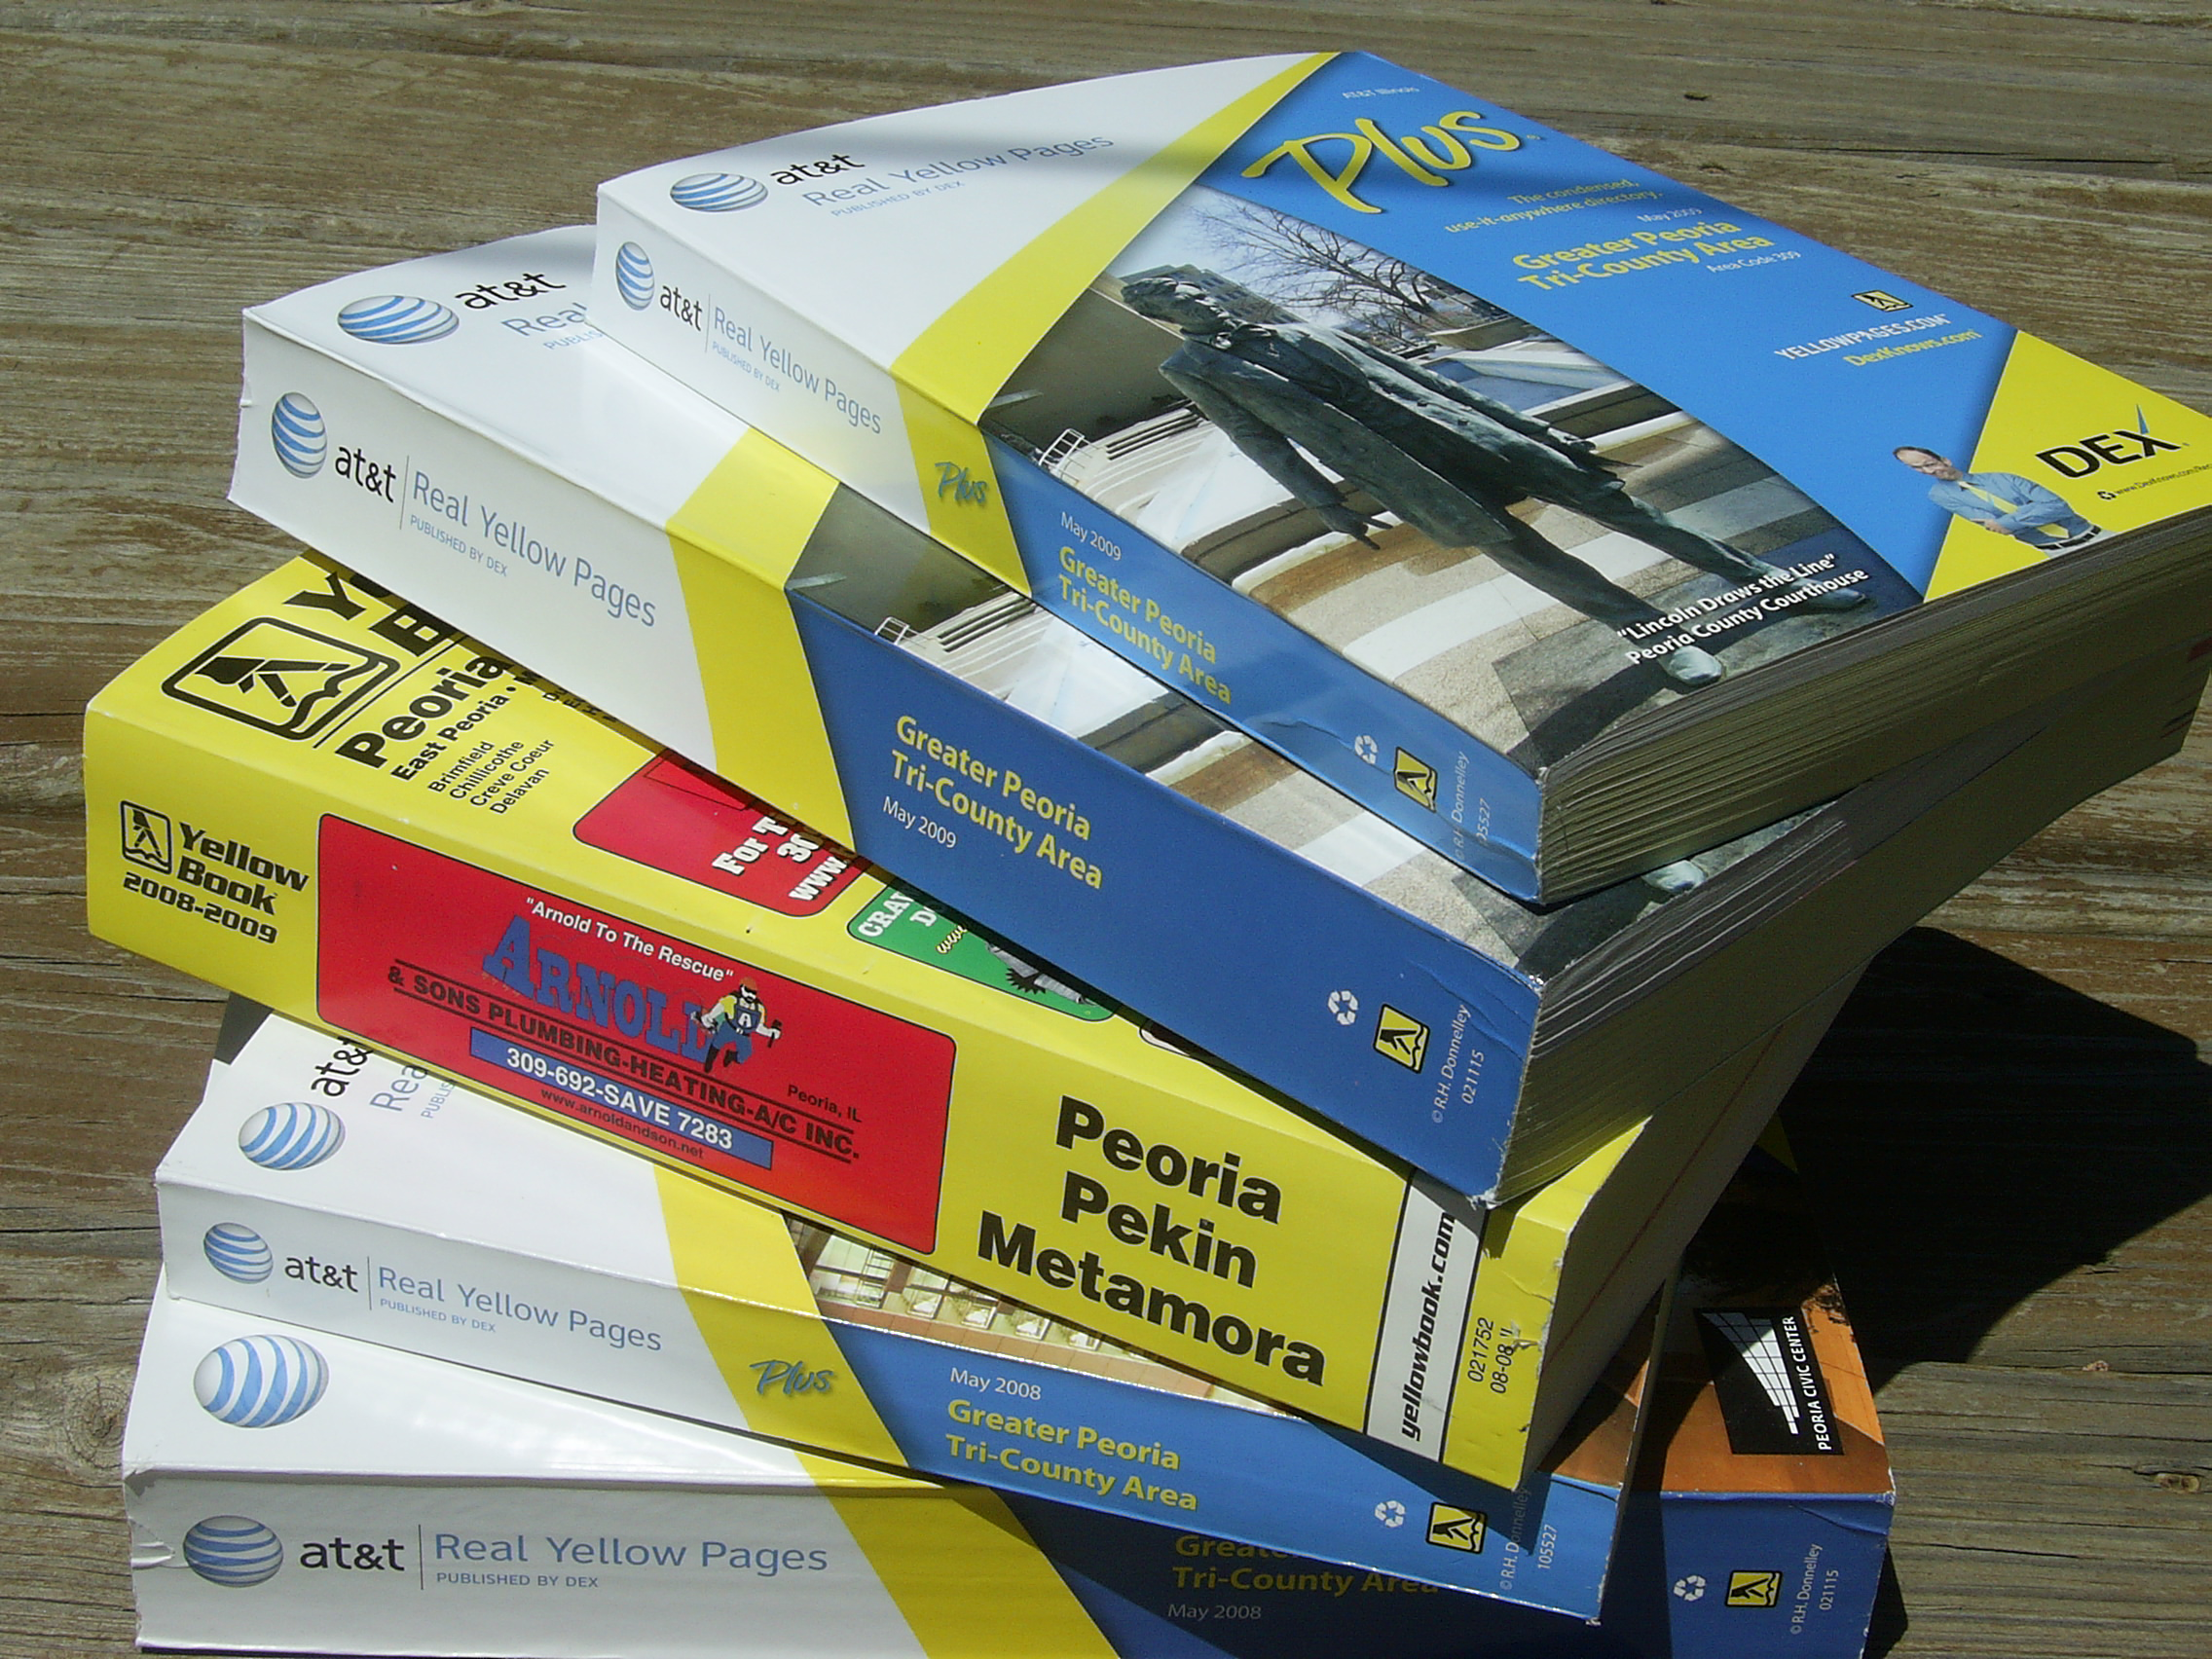 Recycling Old Phone Books